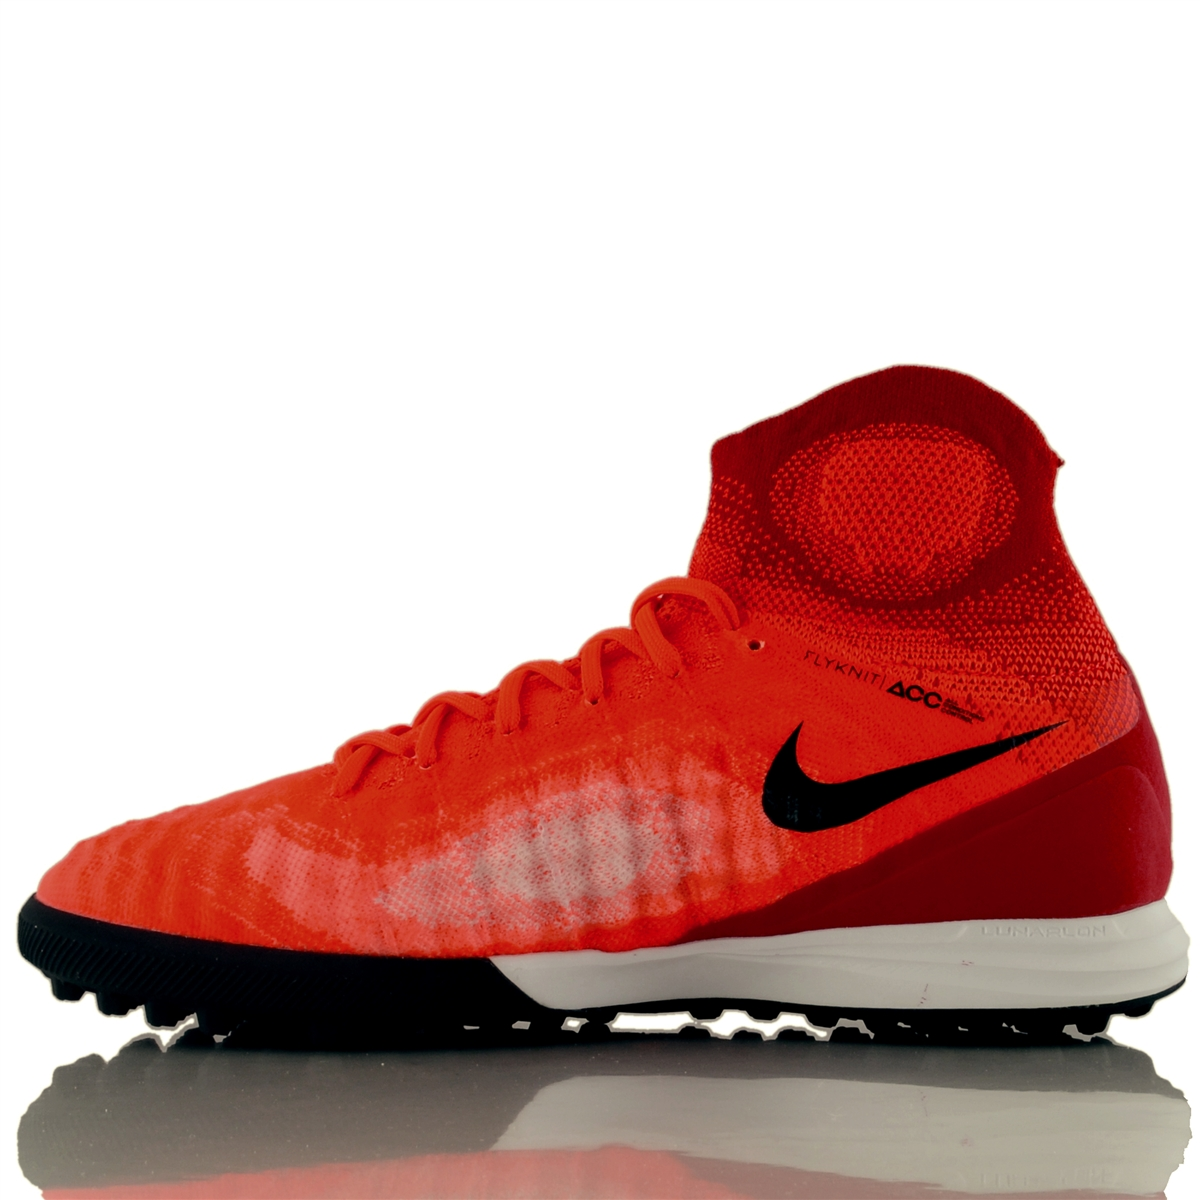 new arrival 4bf0b 392c5 ... top quality nike magistax proximo b1202 5c98e